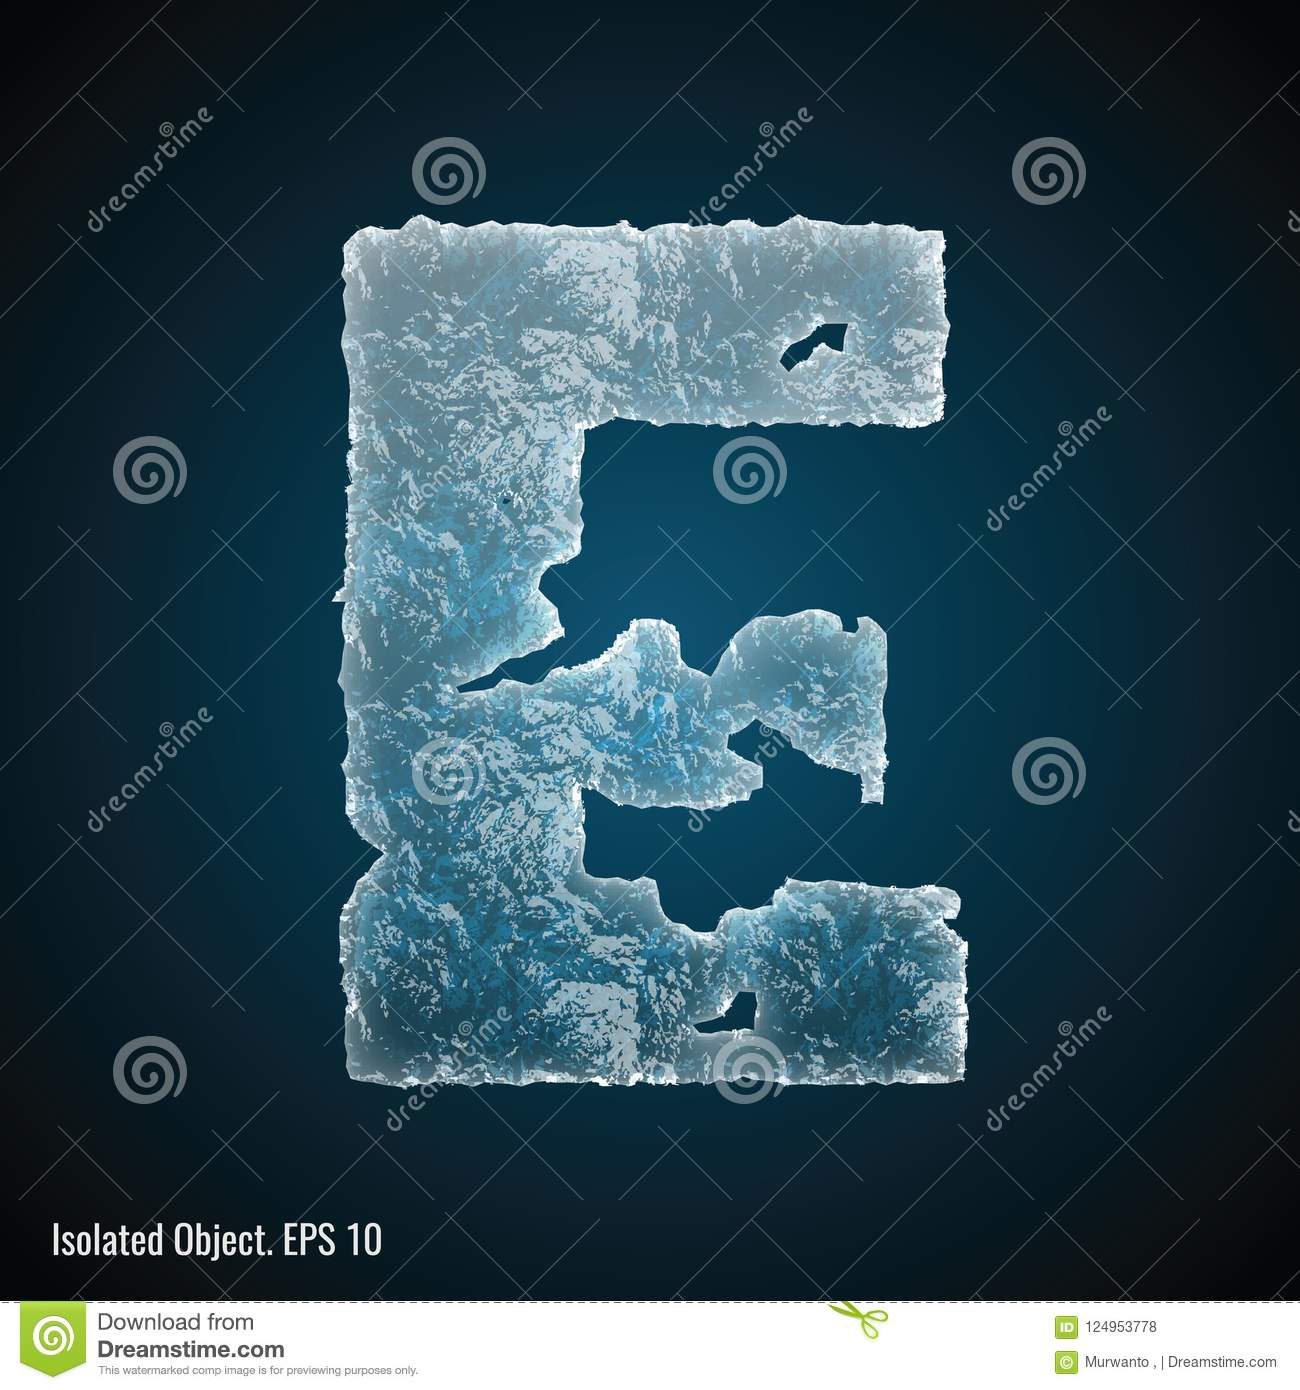 Ice Font of Letter E